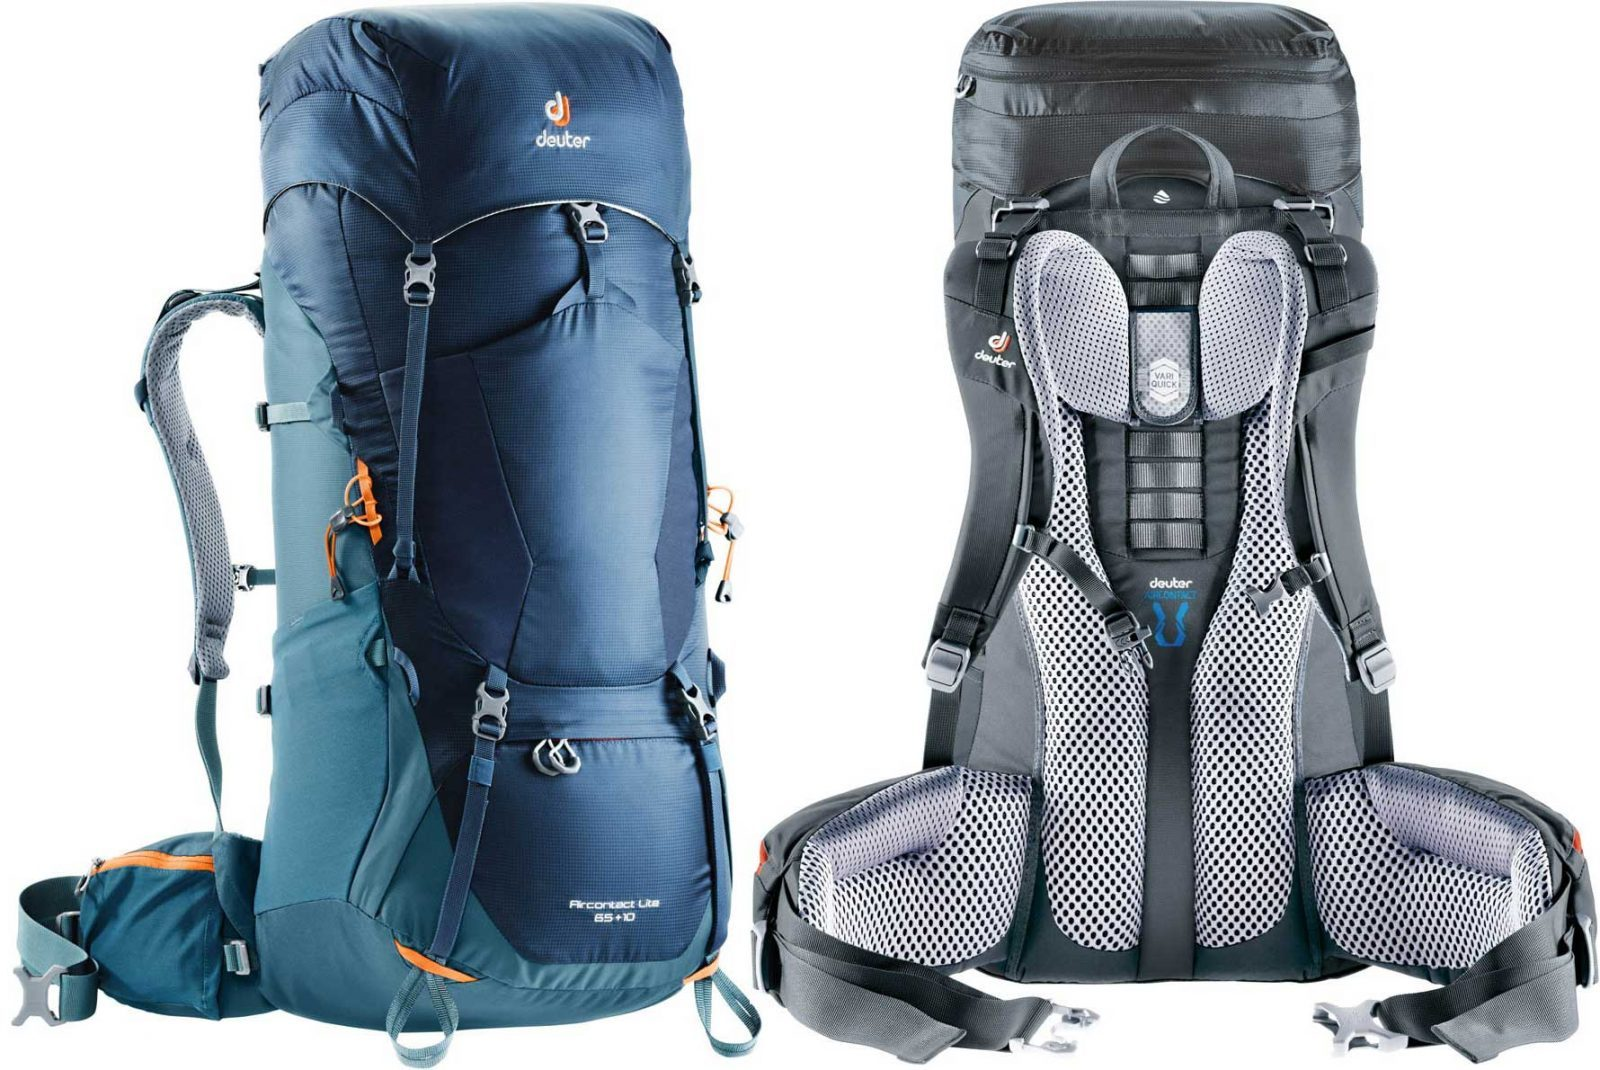 Deuter Aircontact Lite 2018 model